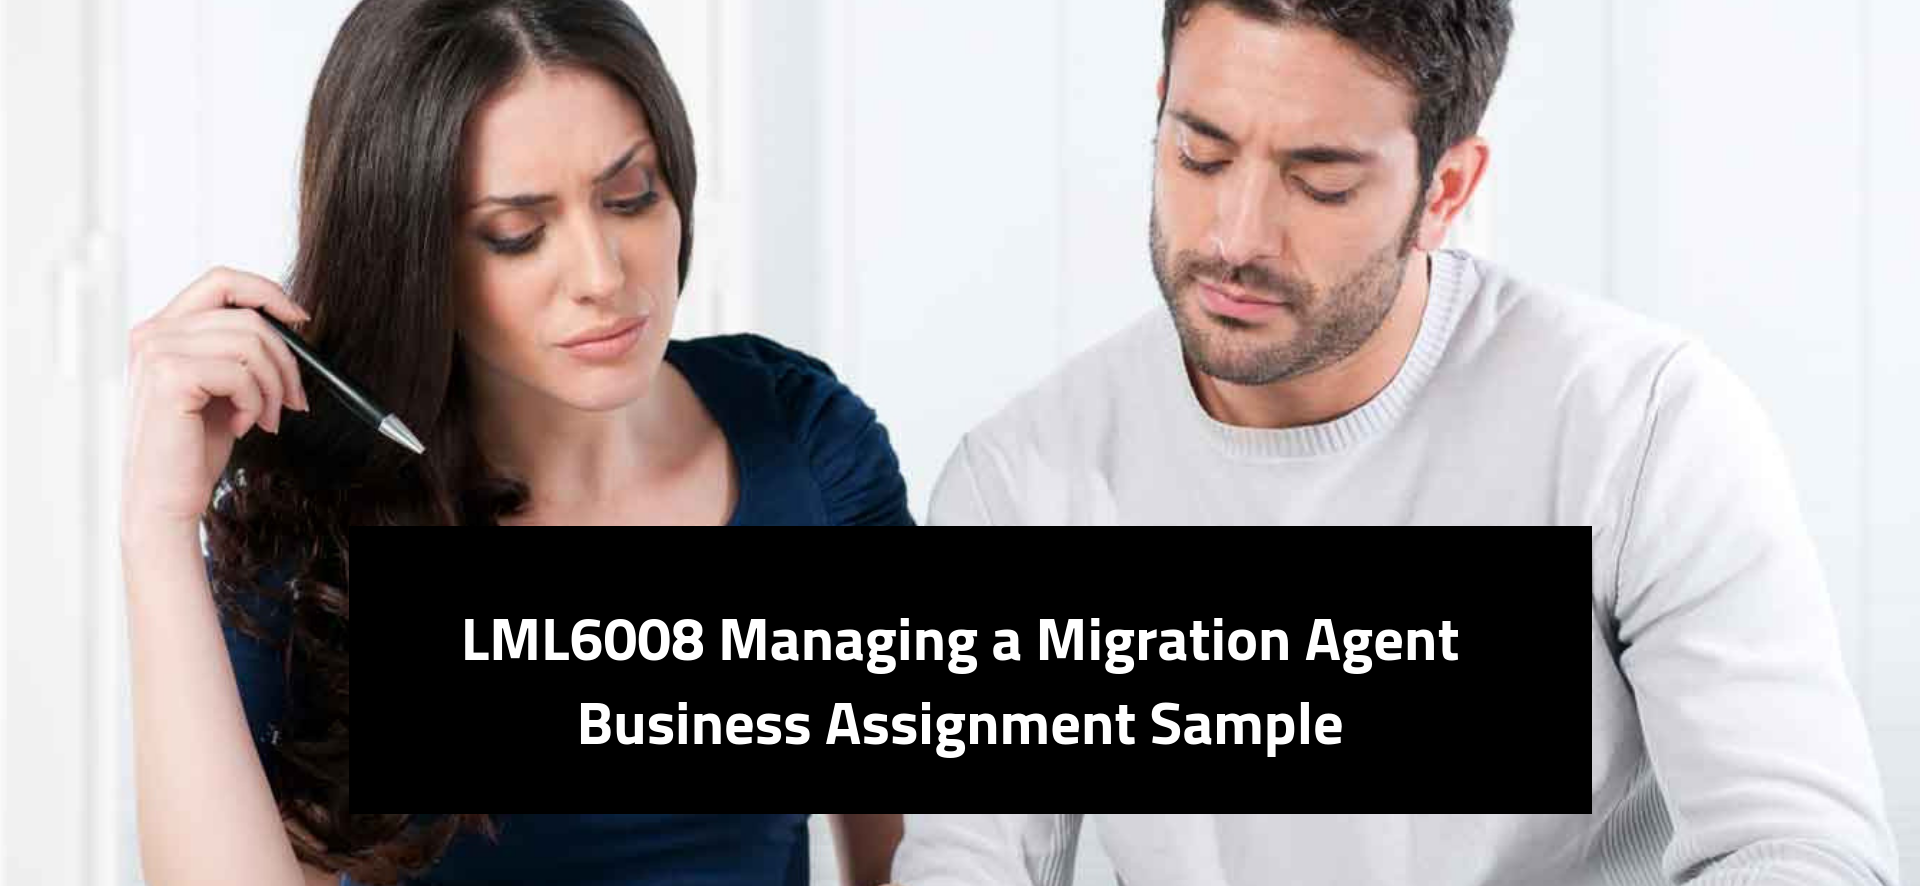 LML6008 Managing a Migration Agent Business Assignment Sample